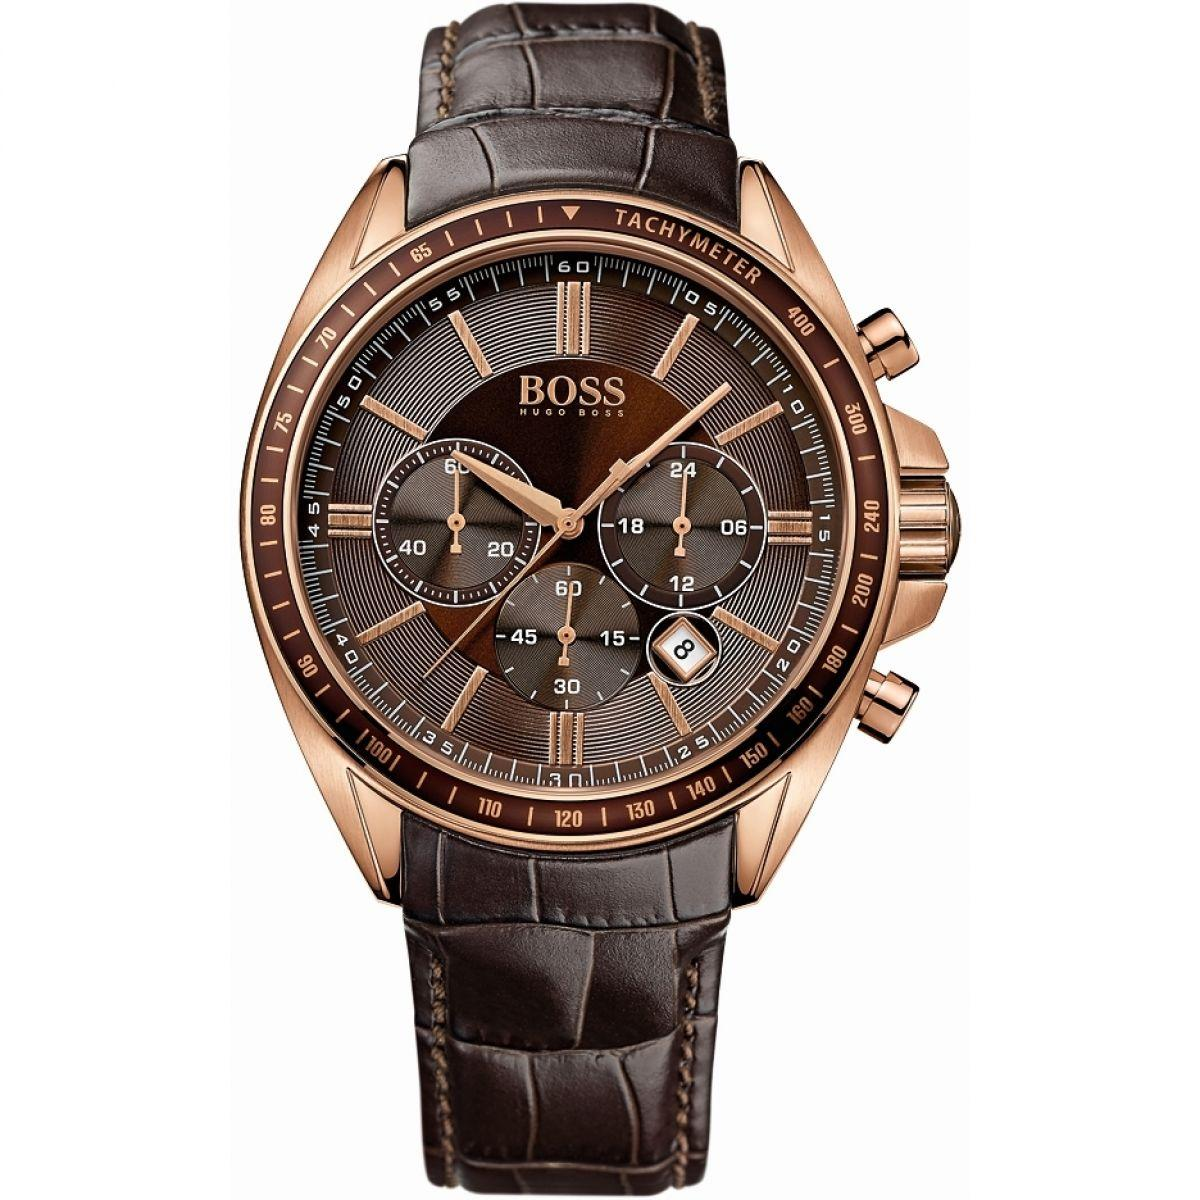 Hugo Boss Driver Chronograph Leather Mens Watch Hb1513093 By Le Montres.